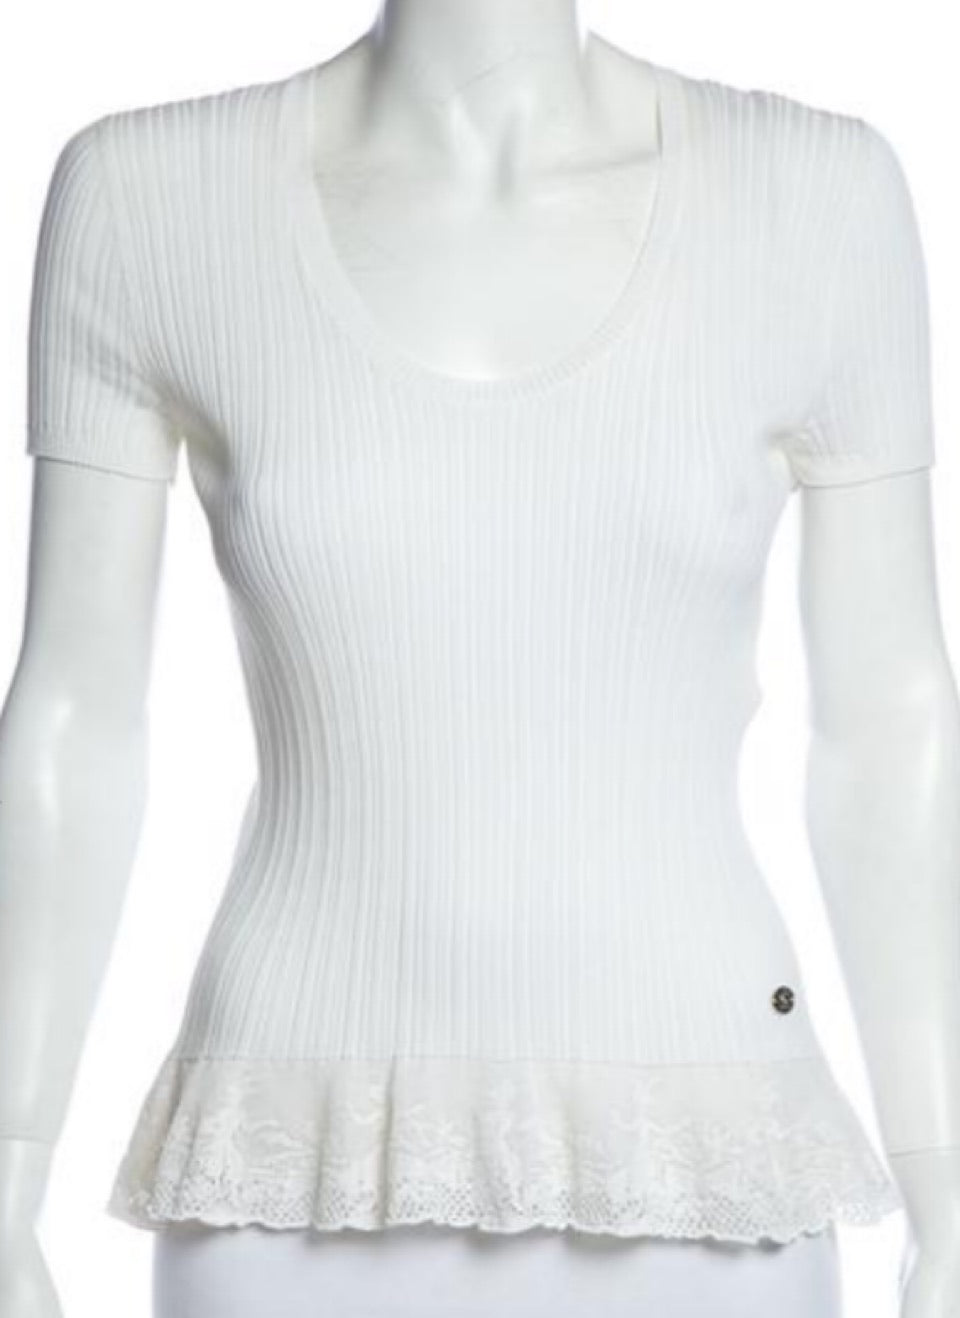 Chanel 06P white ribbed Lace T-shirt Tee Top FR 46 US 12